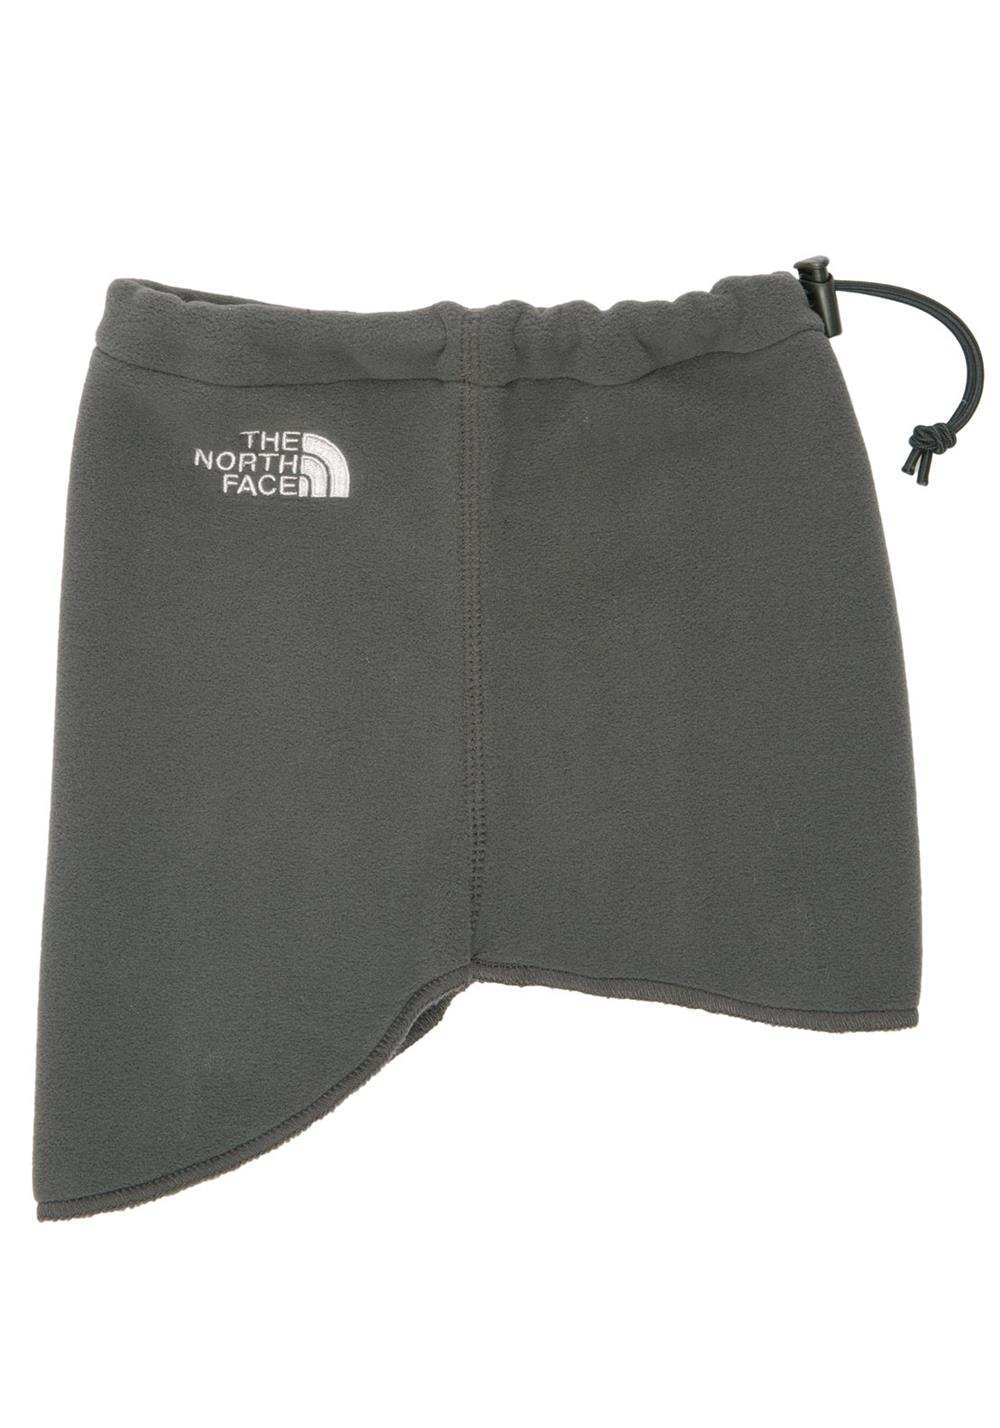 The North Face Neck Gaiter, Grey